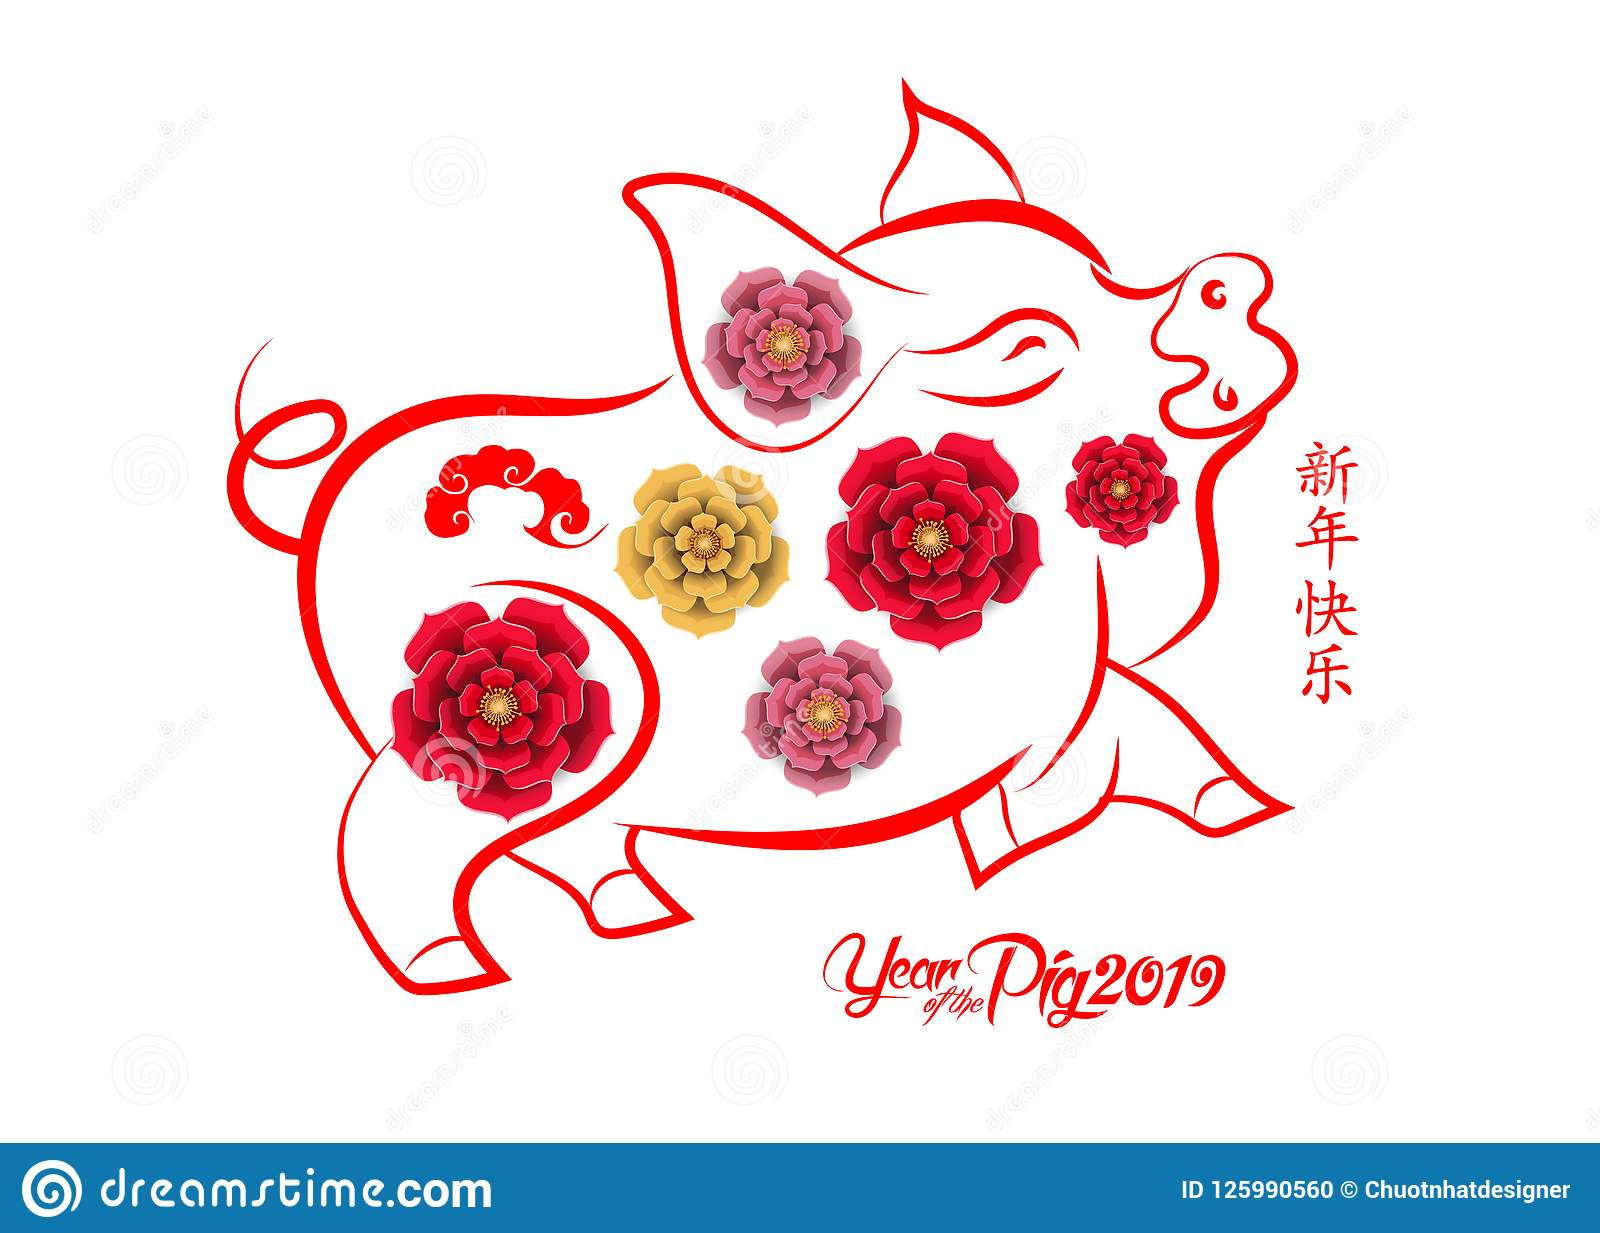 chinese new year 2019 stamp background chinese characters mean happy new year year of